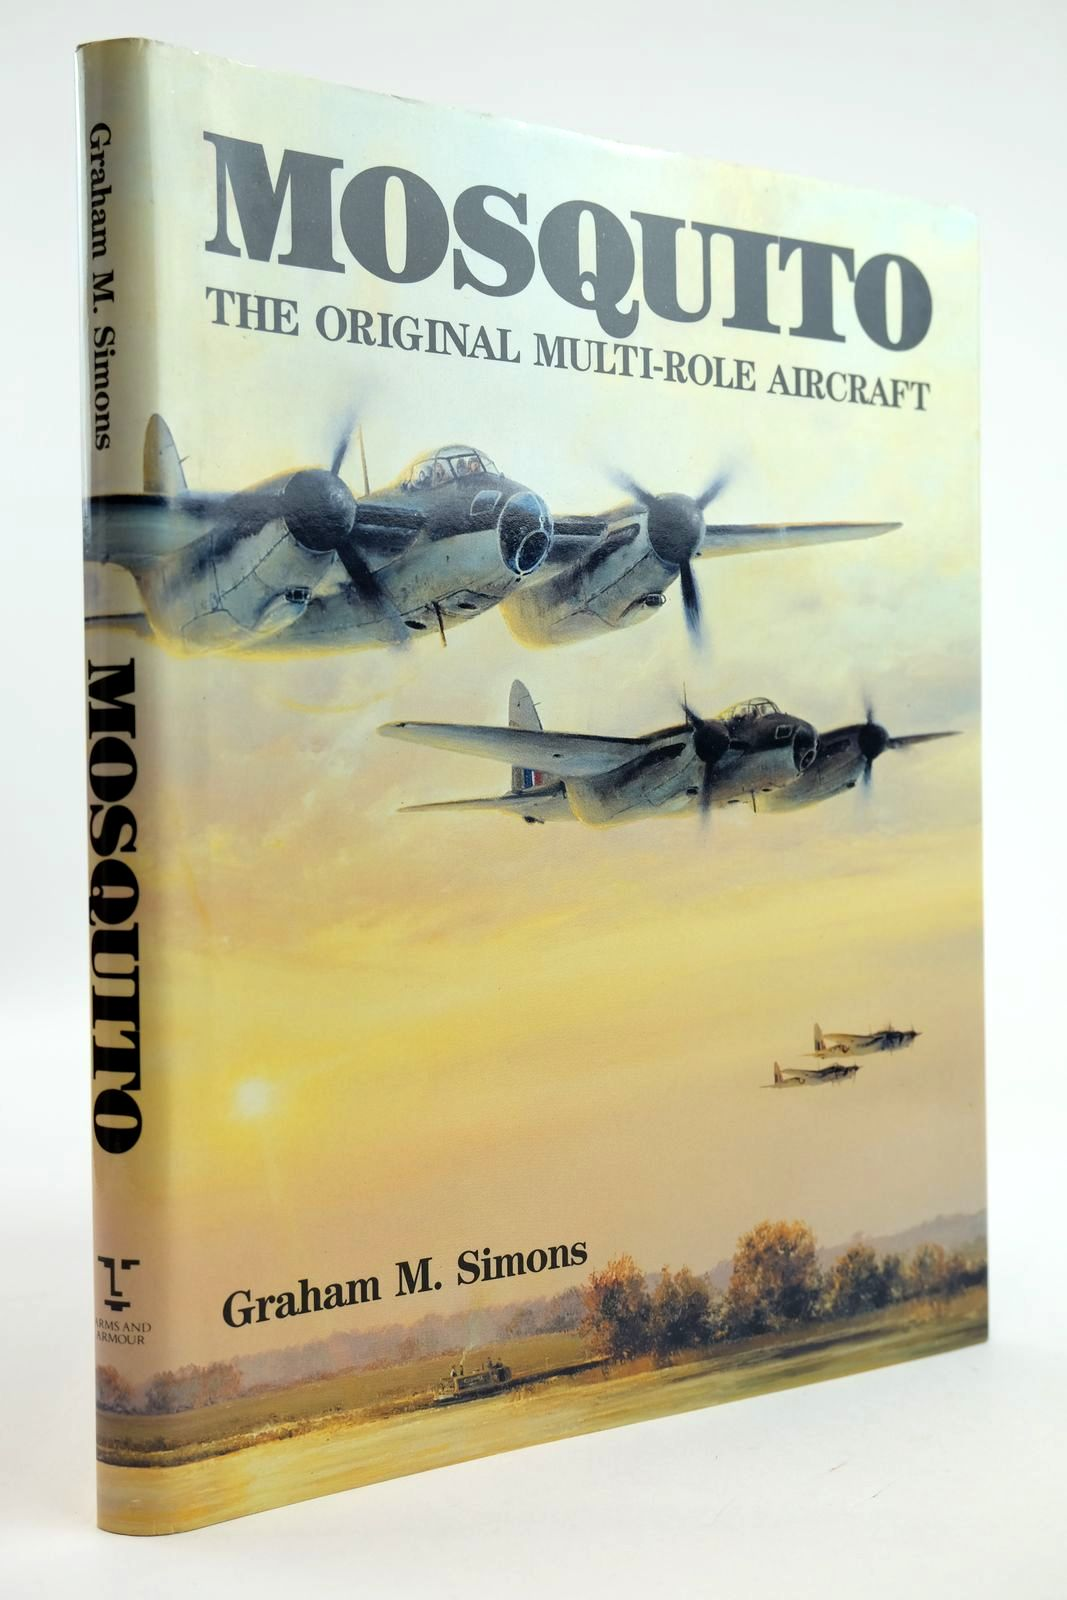 Photo of MOSQUITO THE ORIGINAL MULTI-ROLE AIRCRAFT written by Simons, Graham M. published by Arms & Armour Press (STOCK CODE: 2132161)  for sale by Stella & Rose's Books